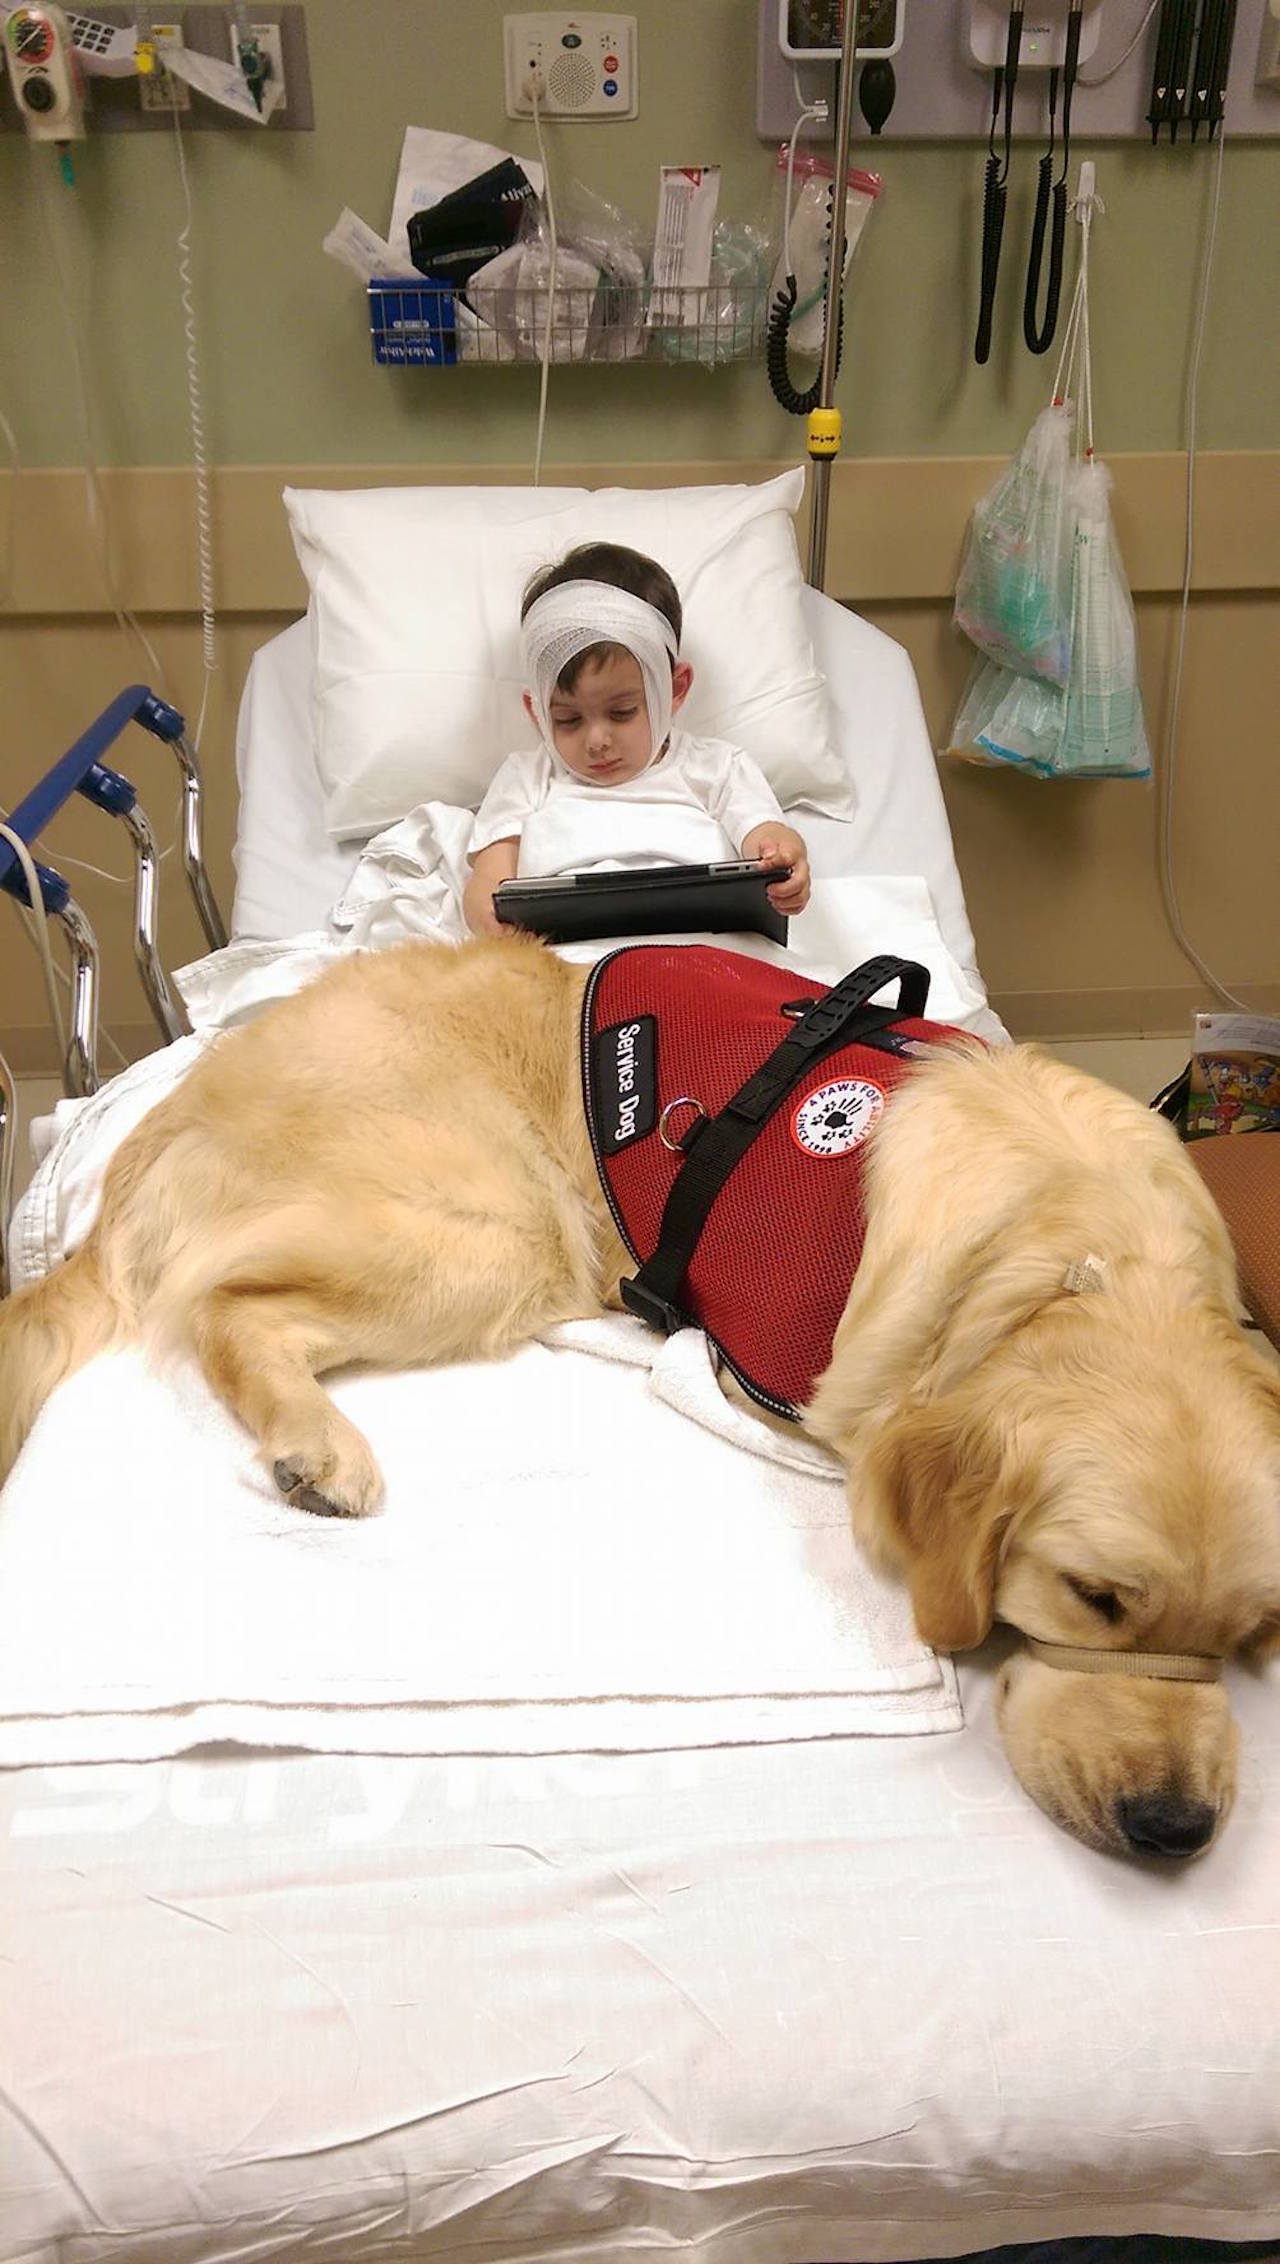 little boy in a hospital bed with a service dog